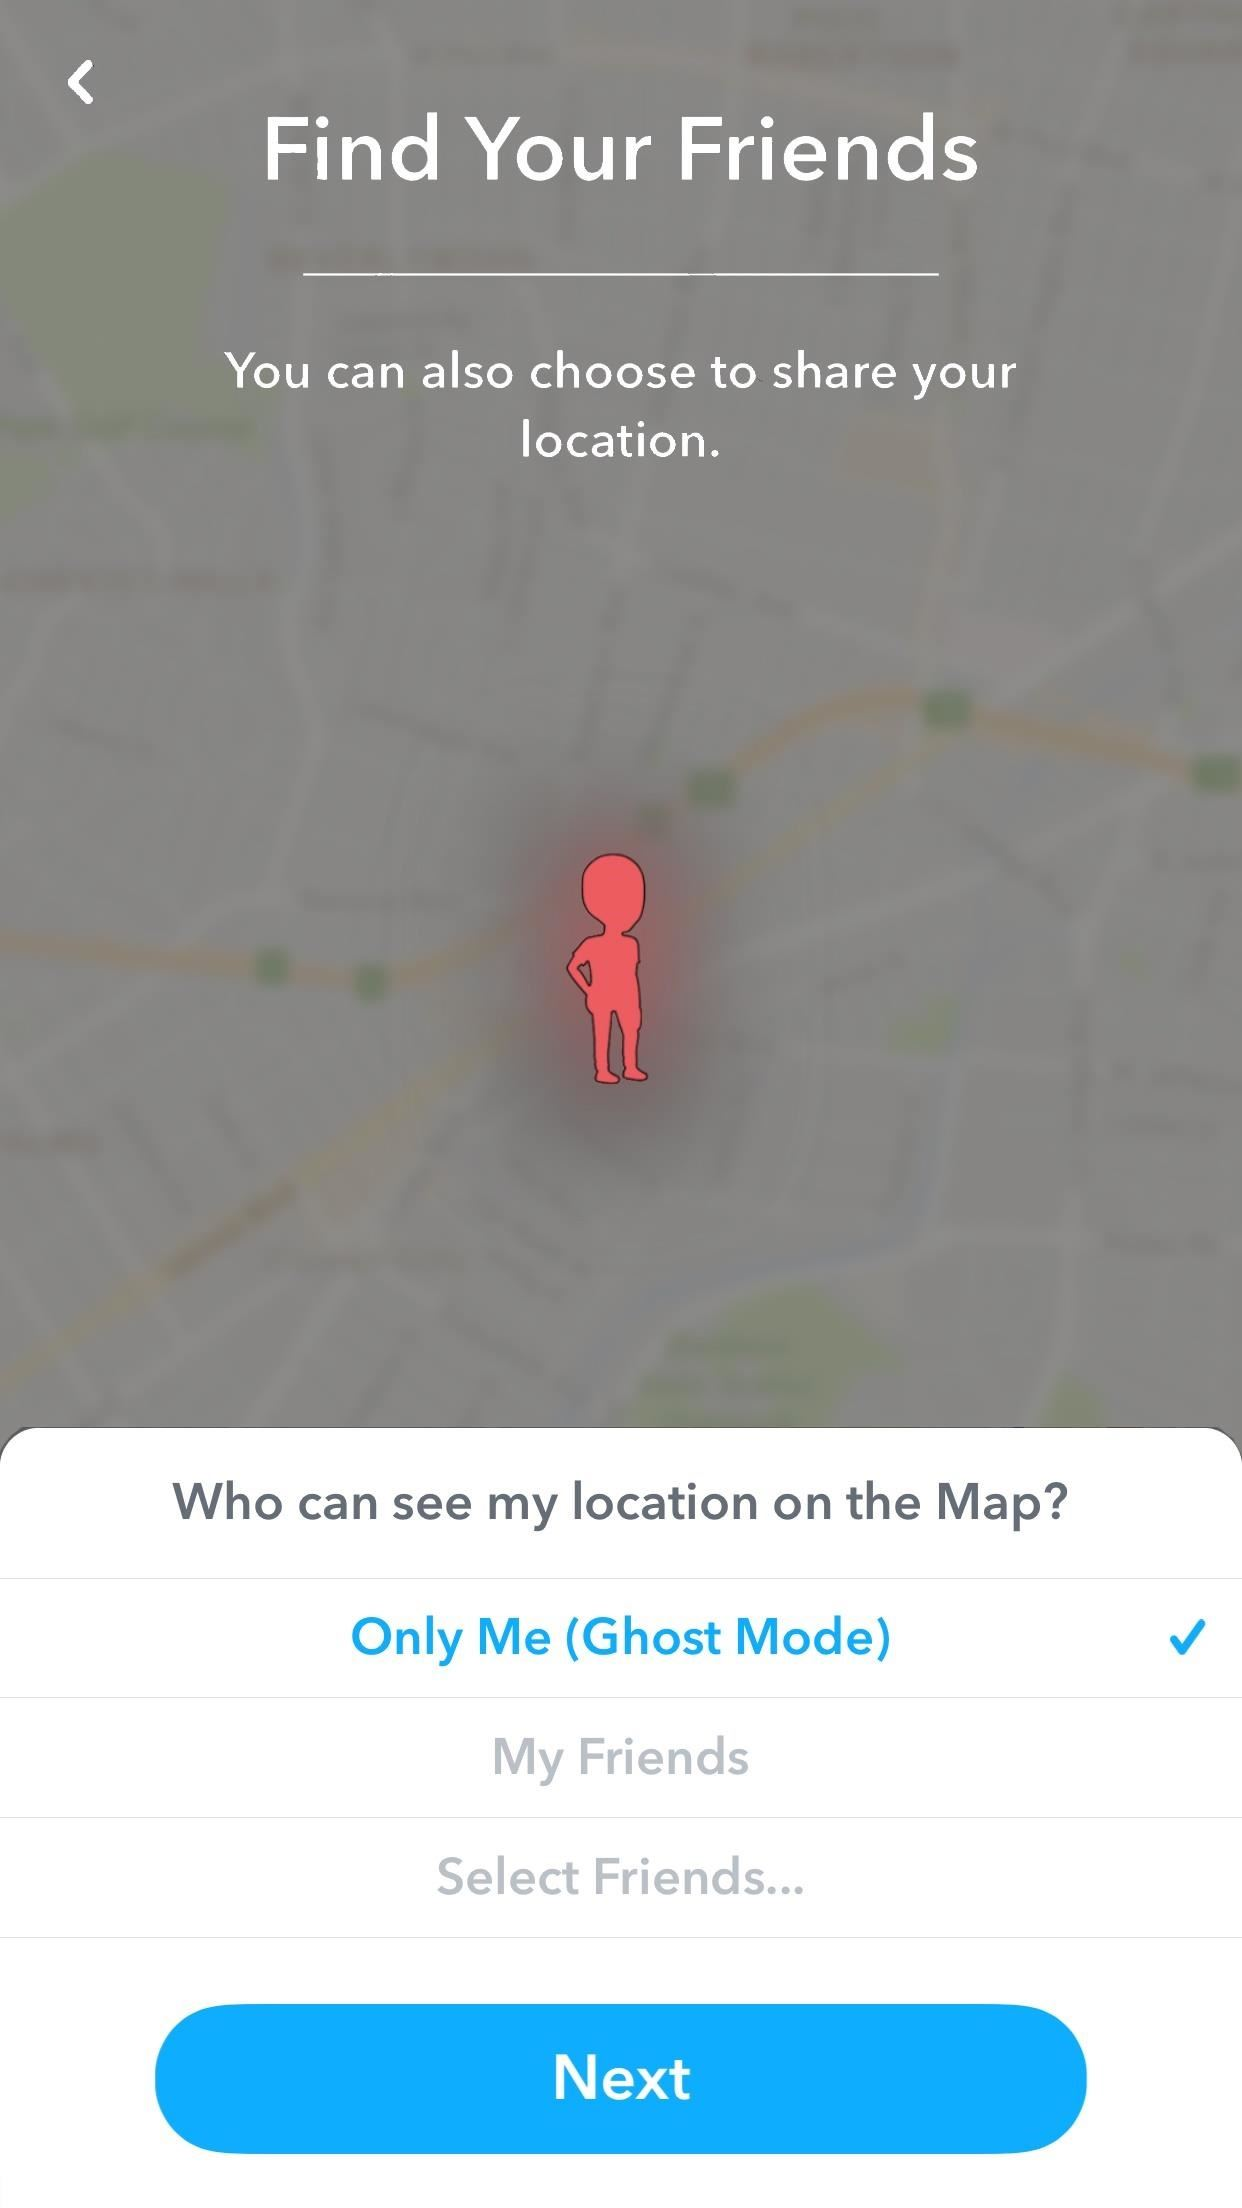 Snapchat 101: How to Turn On Ghost Mode for Snap Map to Keep Your Location Private